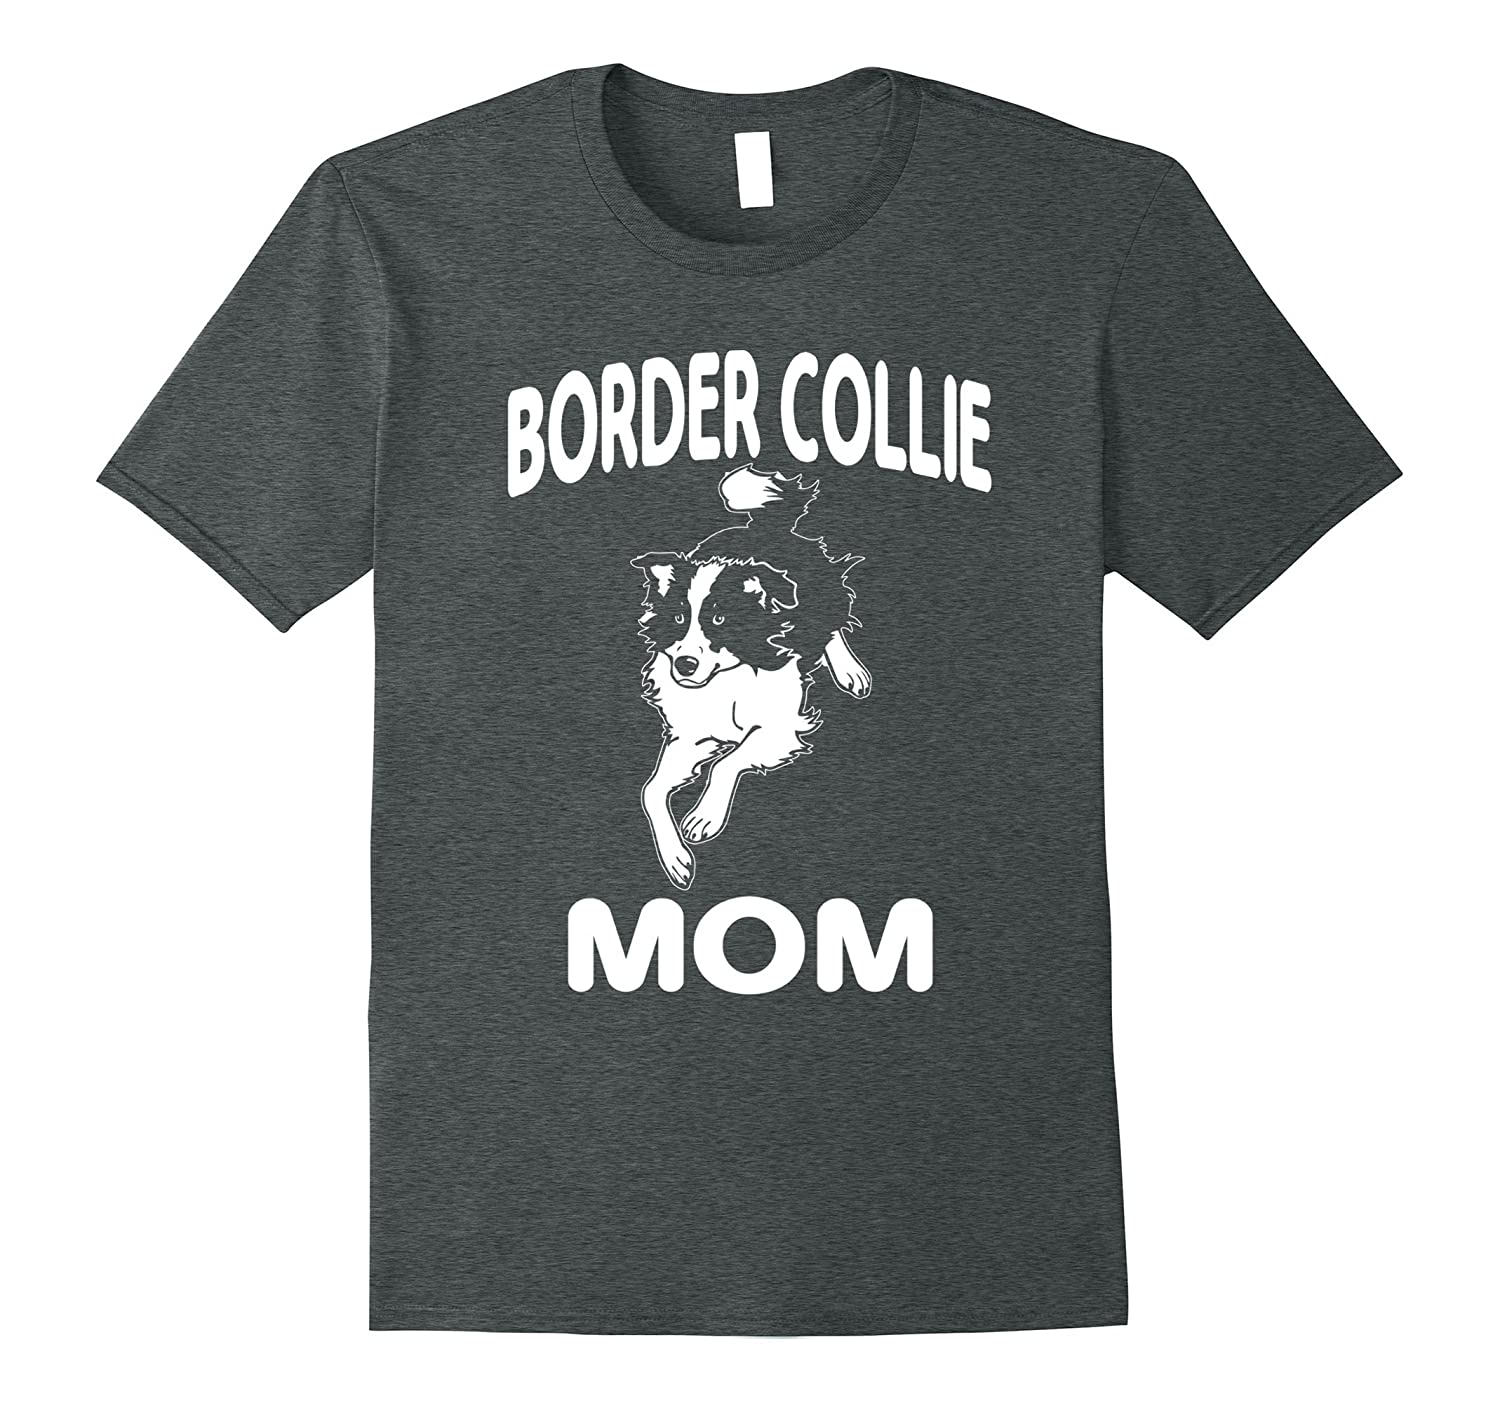 Border Collie Lover Shirt, Border Collie Mom Funny Shirt